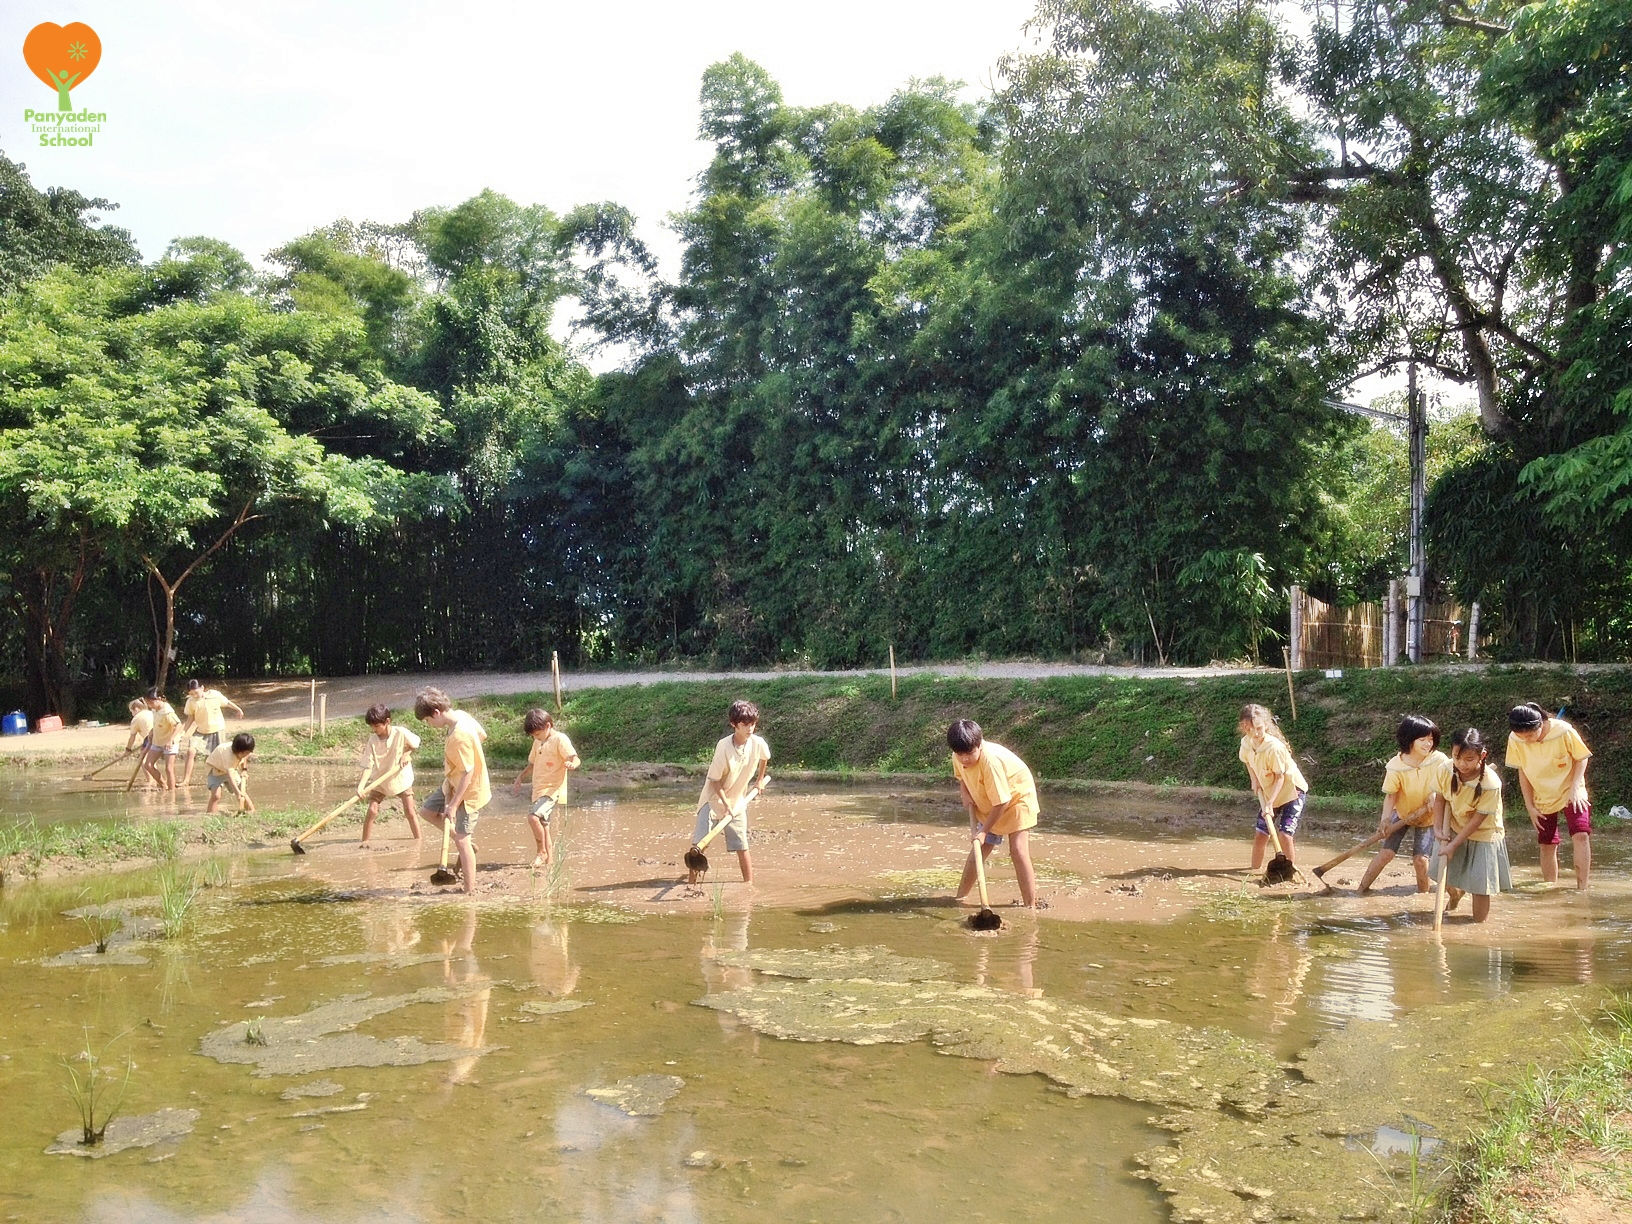 Panyaden International School Life Skills programme: Year 5 (Y5) students preparing field for rice planting at school.